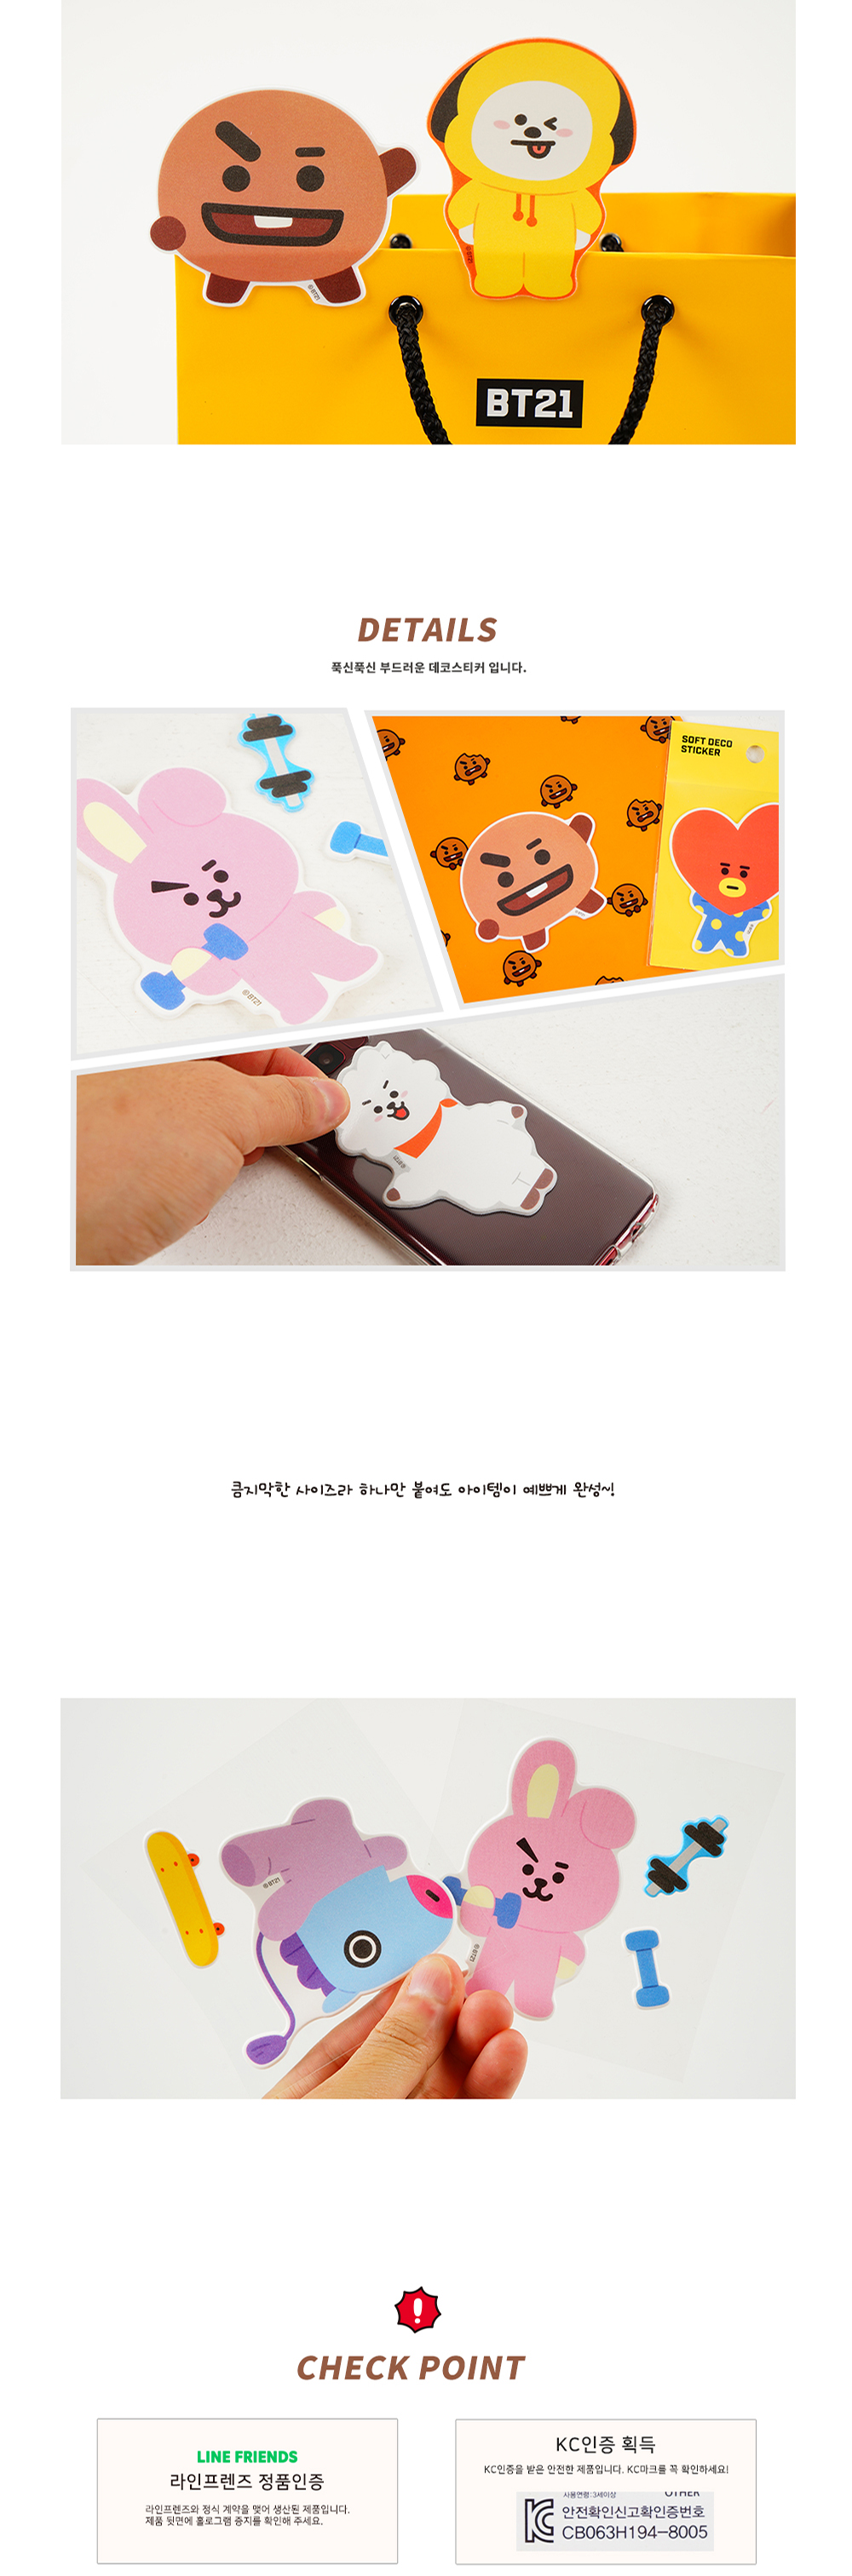 bt21_kf_softdecosticker_03.jpg